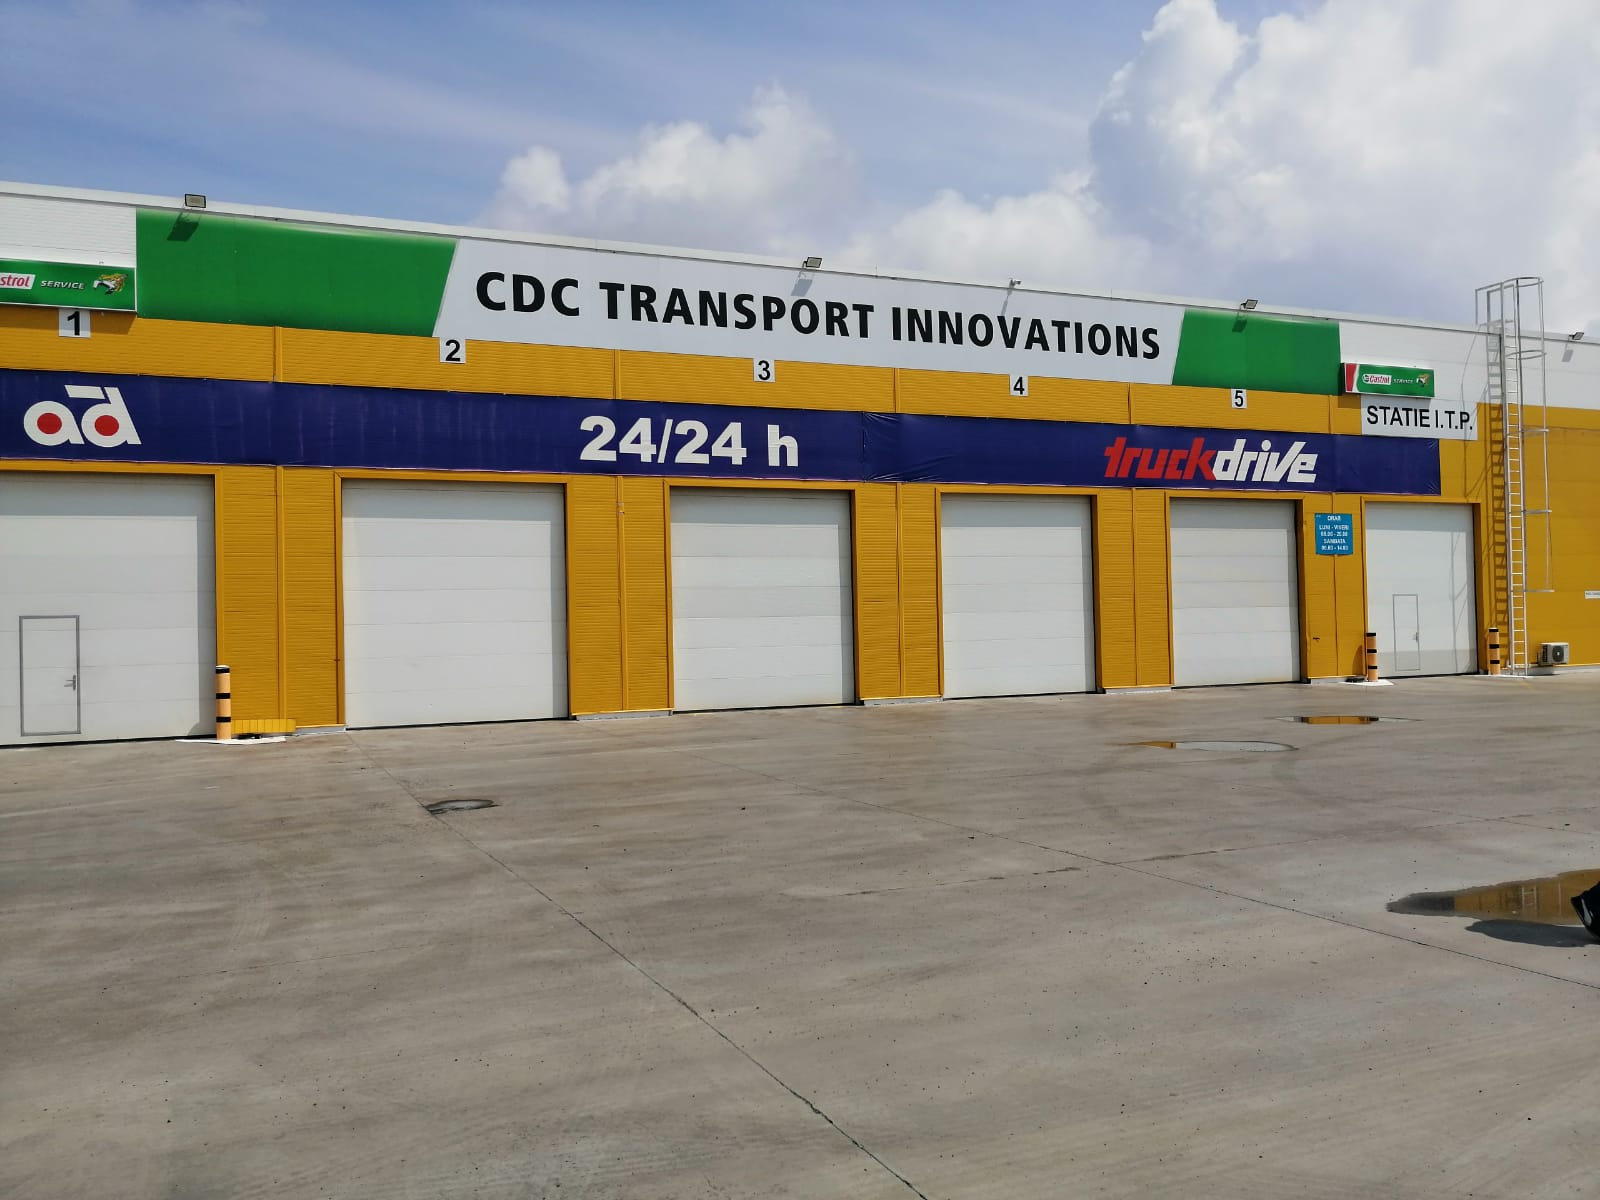 CDC Transport